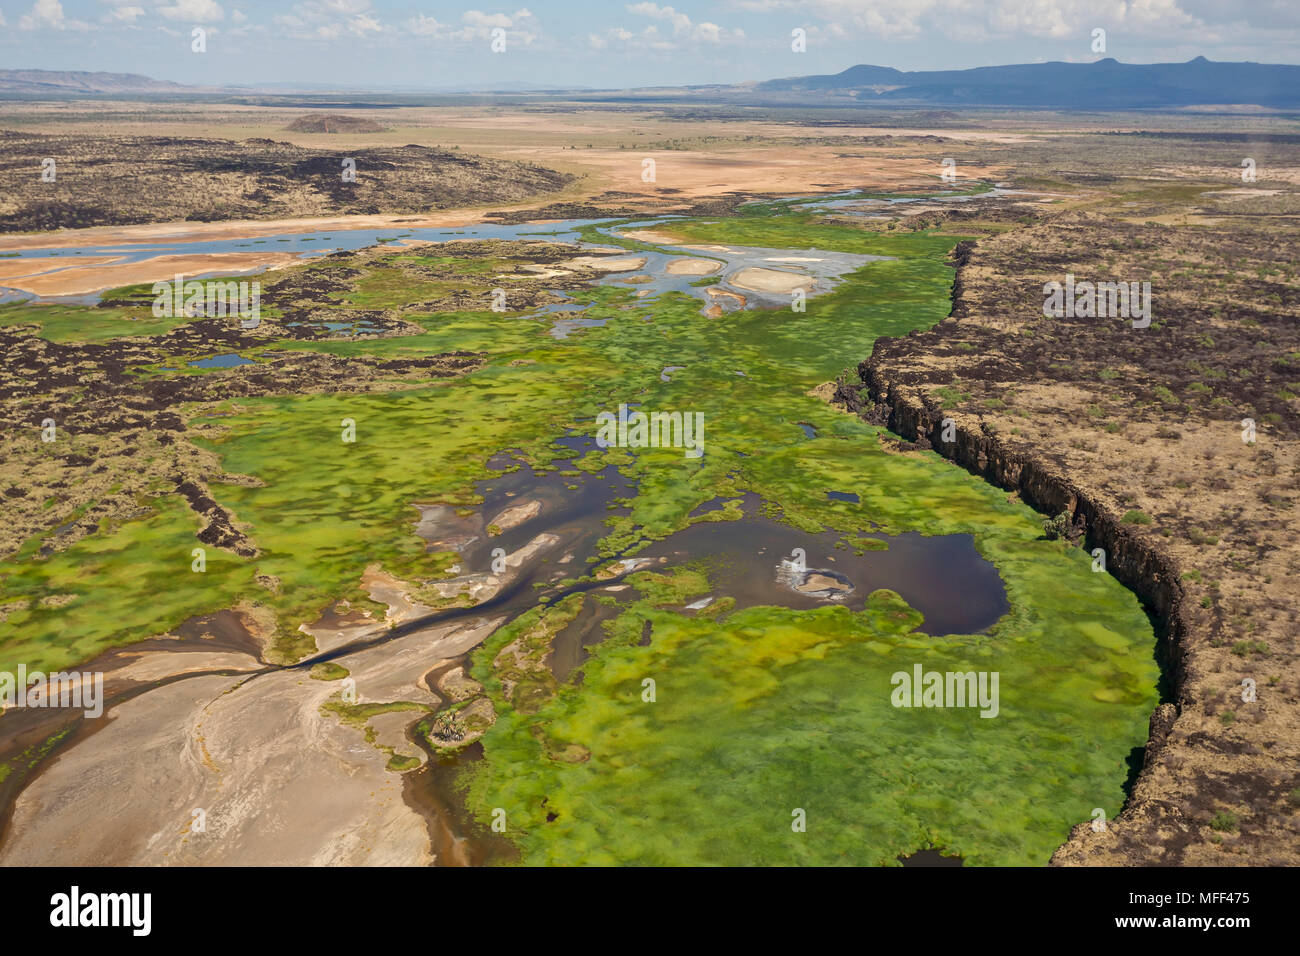 The Suguta river originates in a stream of water that emerges from the side of Mount Silali which is an extinct volcano. Stock Photo